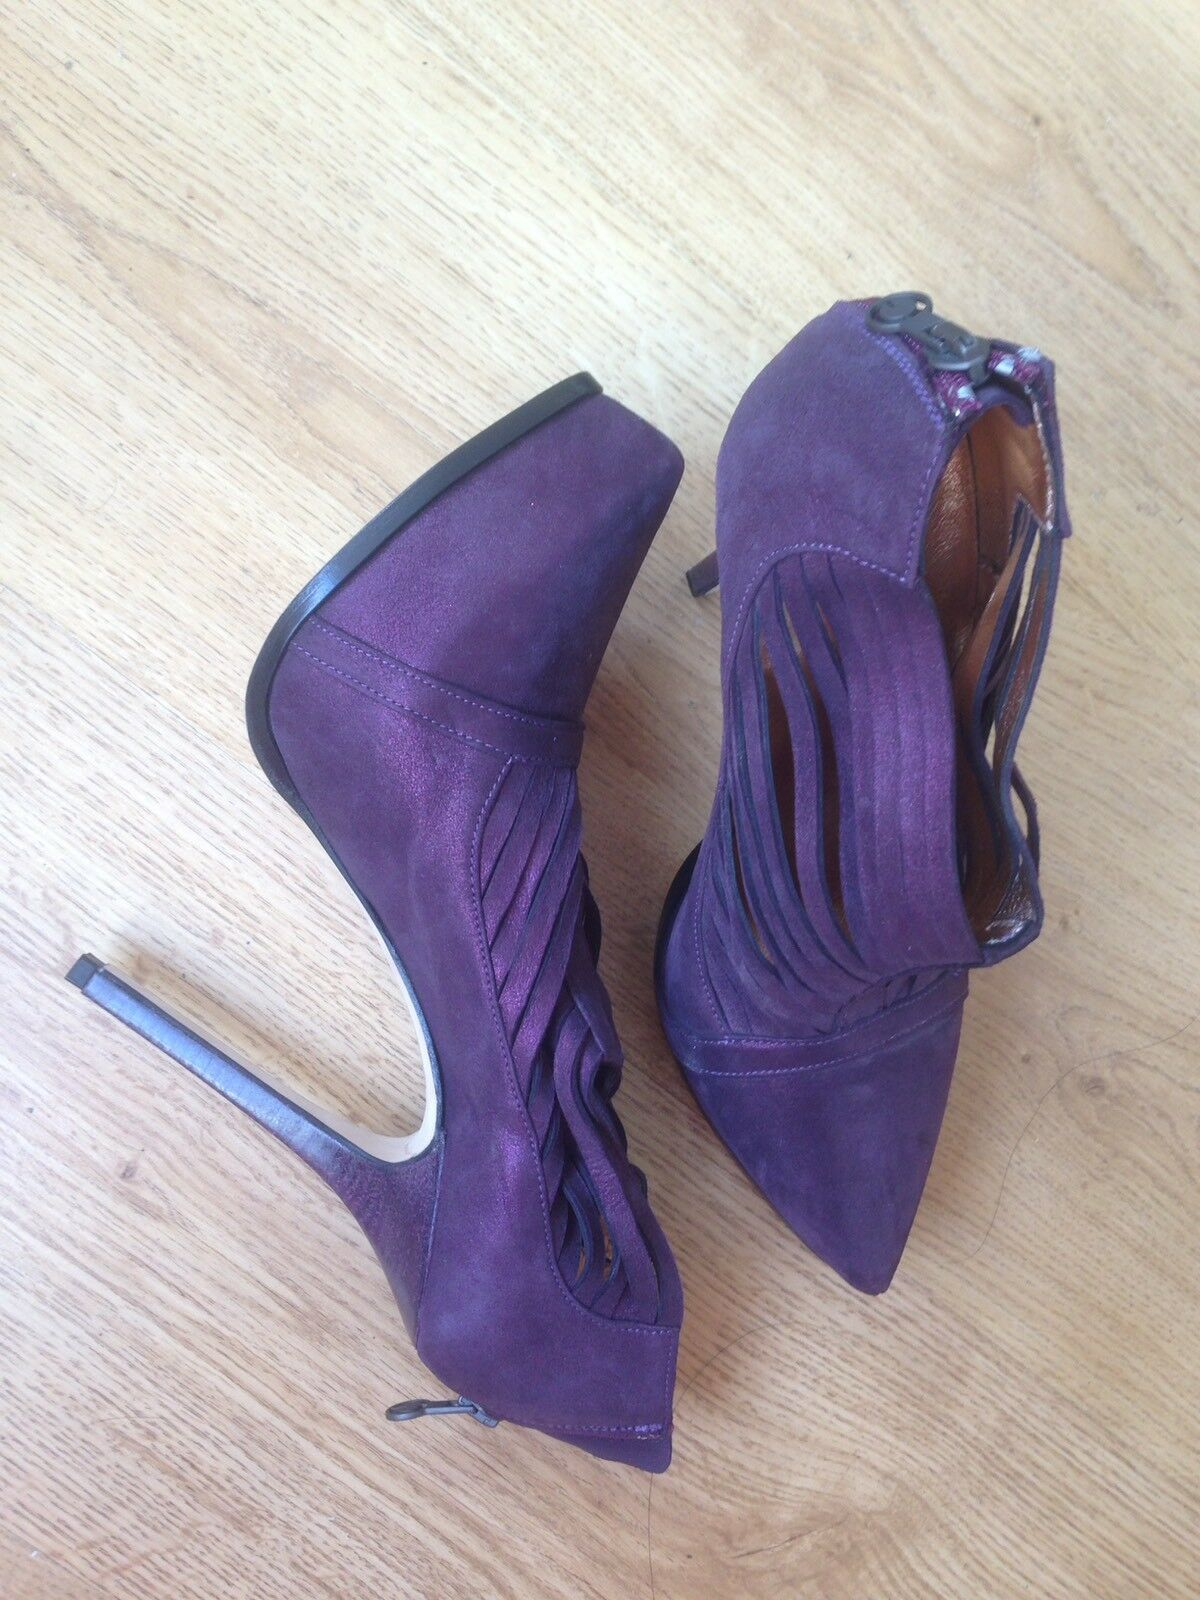 BRAND NEW GIL CARVALHO (LONDON) VERO CUOIO (MADE IN ITALY) SIZE 36  HEEL  4